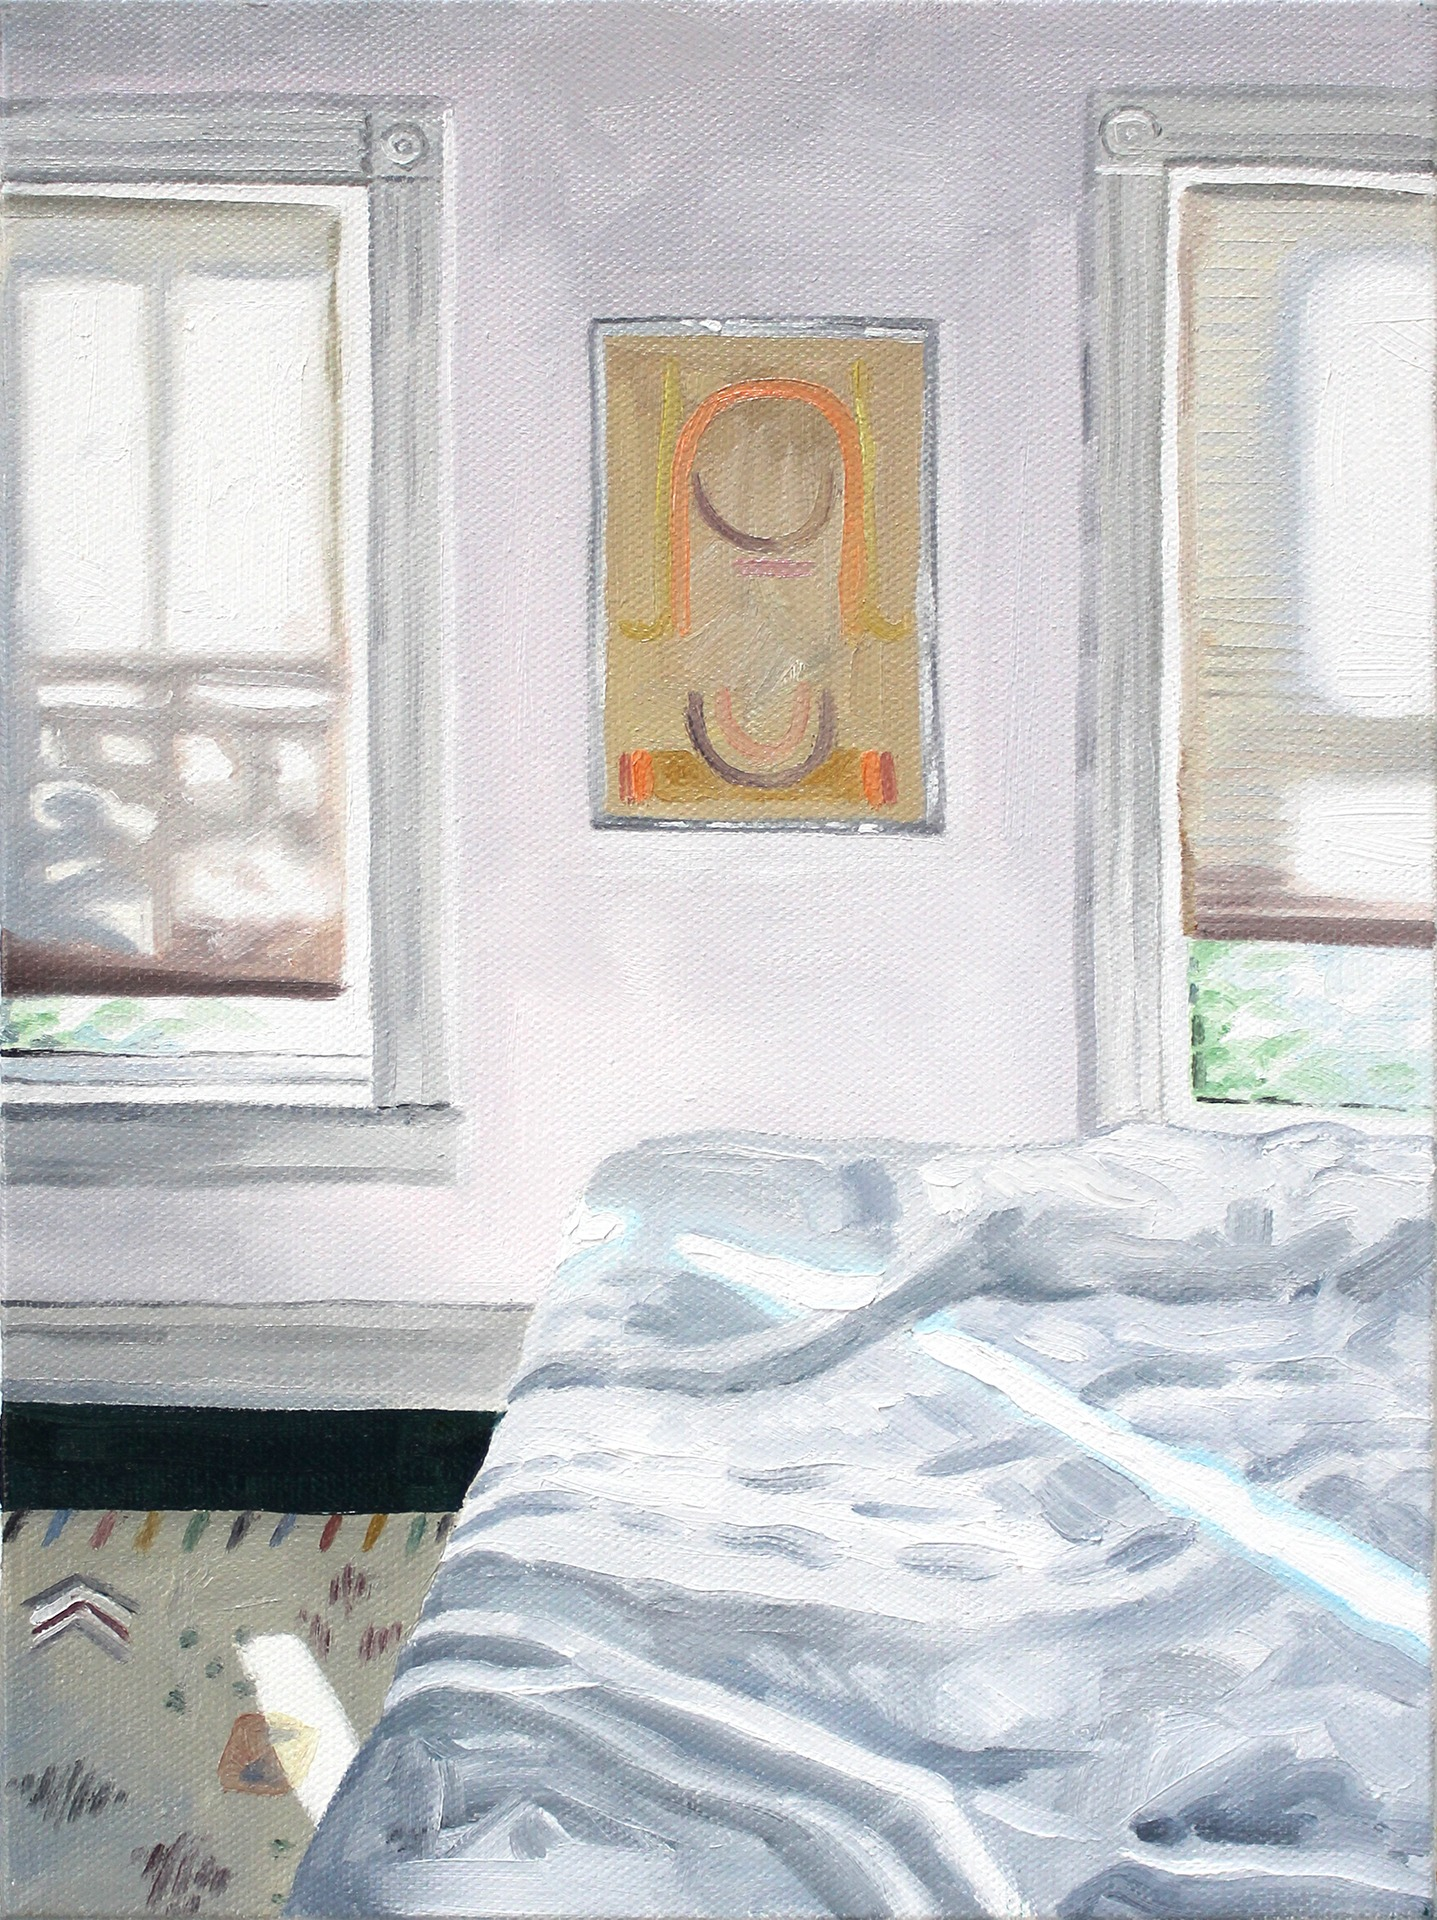 A painting by Lina Tharsing titled Bedroom Light, dated 2020.